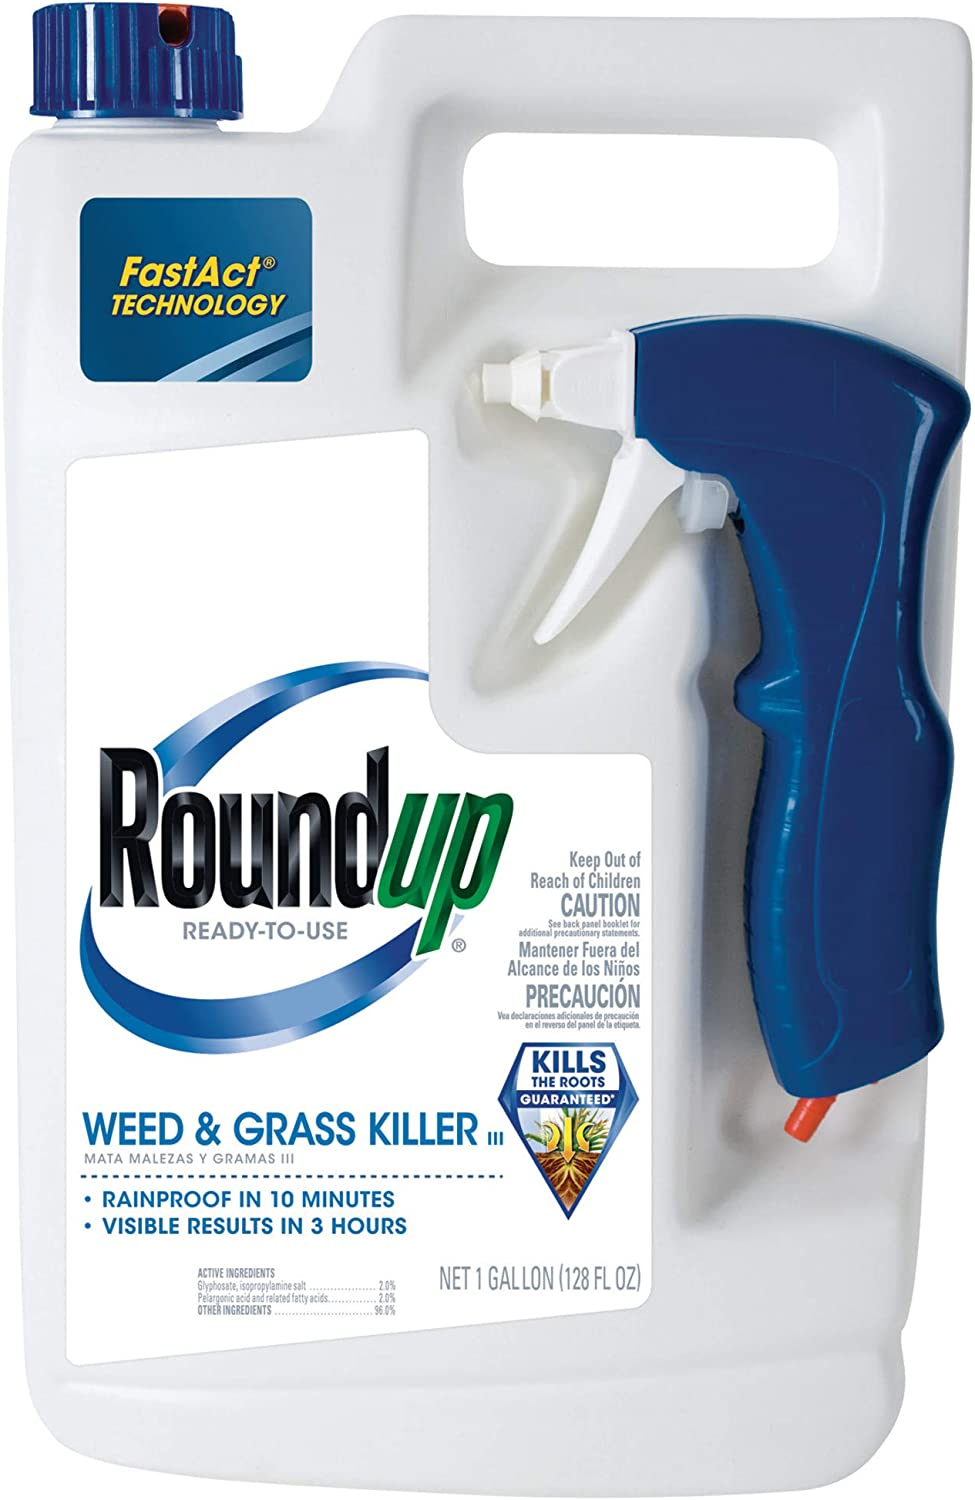 Roundup Weed and Grass Killer III Ready-to-Use Trigger Spray, 1-Gallon